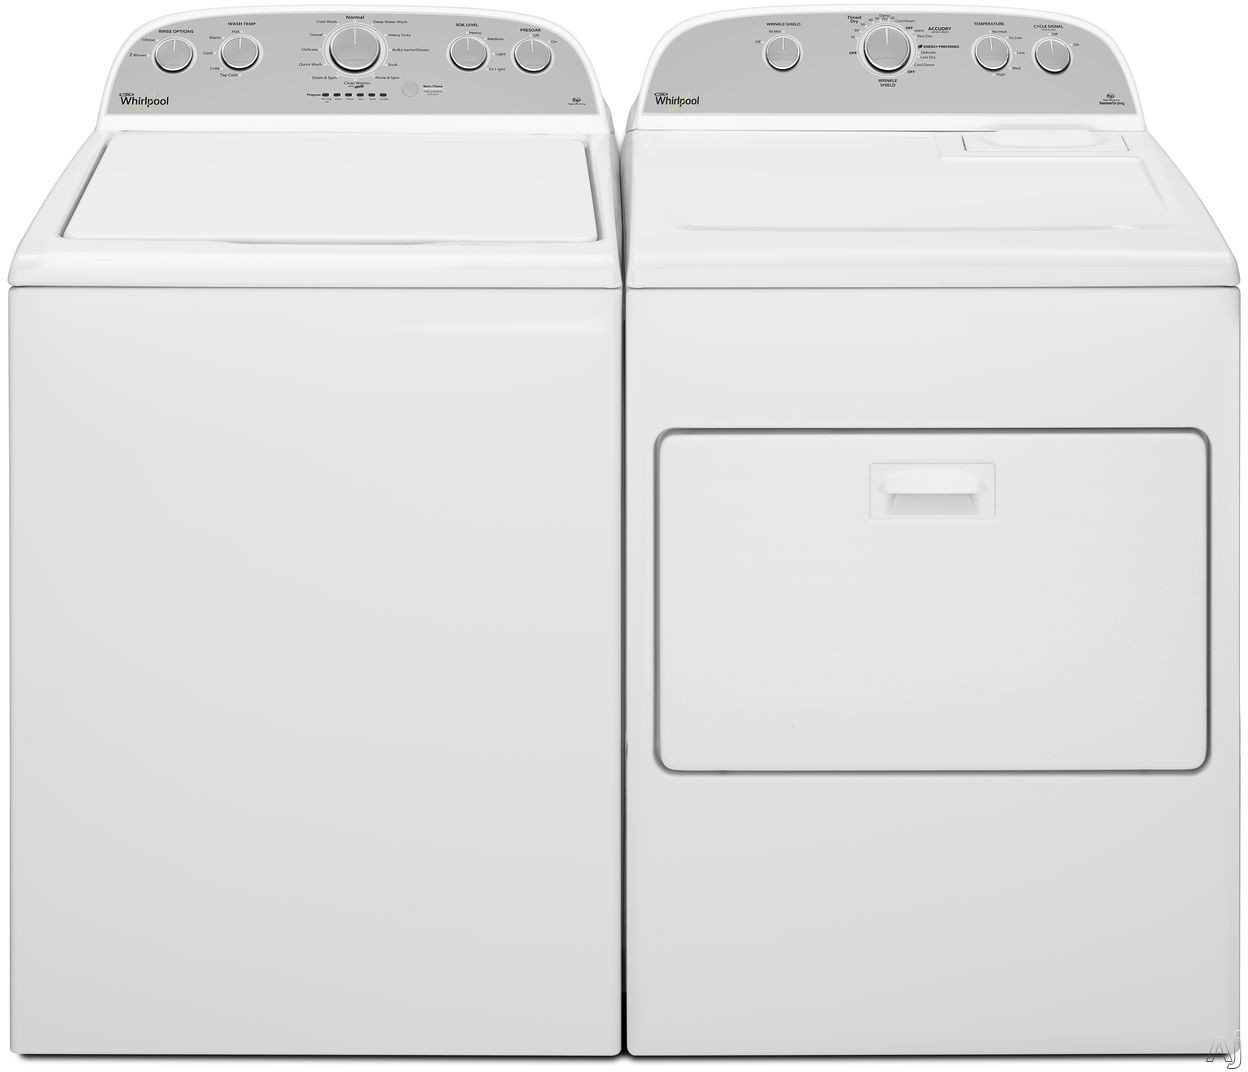 Whirlpool Whi4915tl Whirlpool 4815 Top Load Washer Dryer